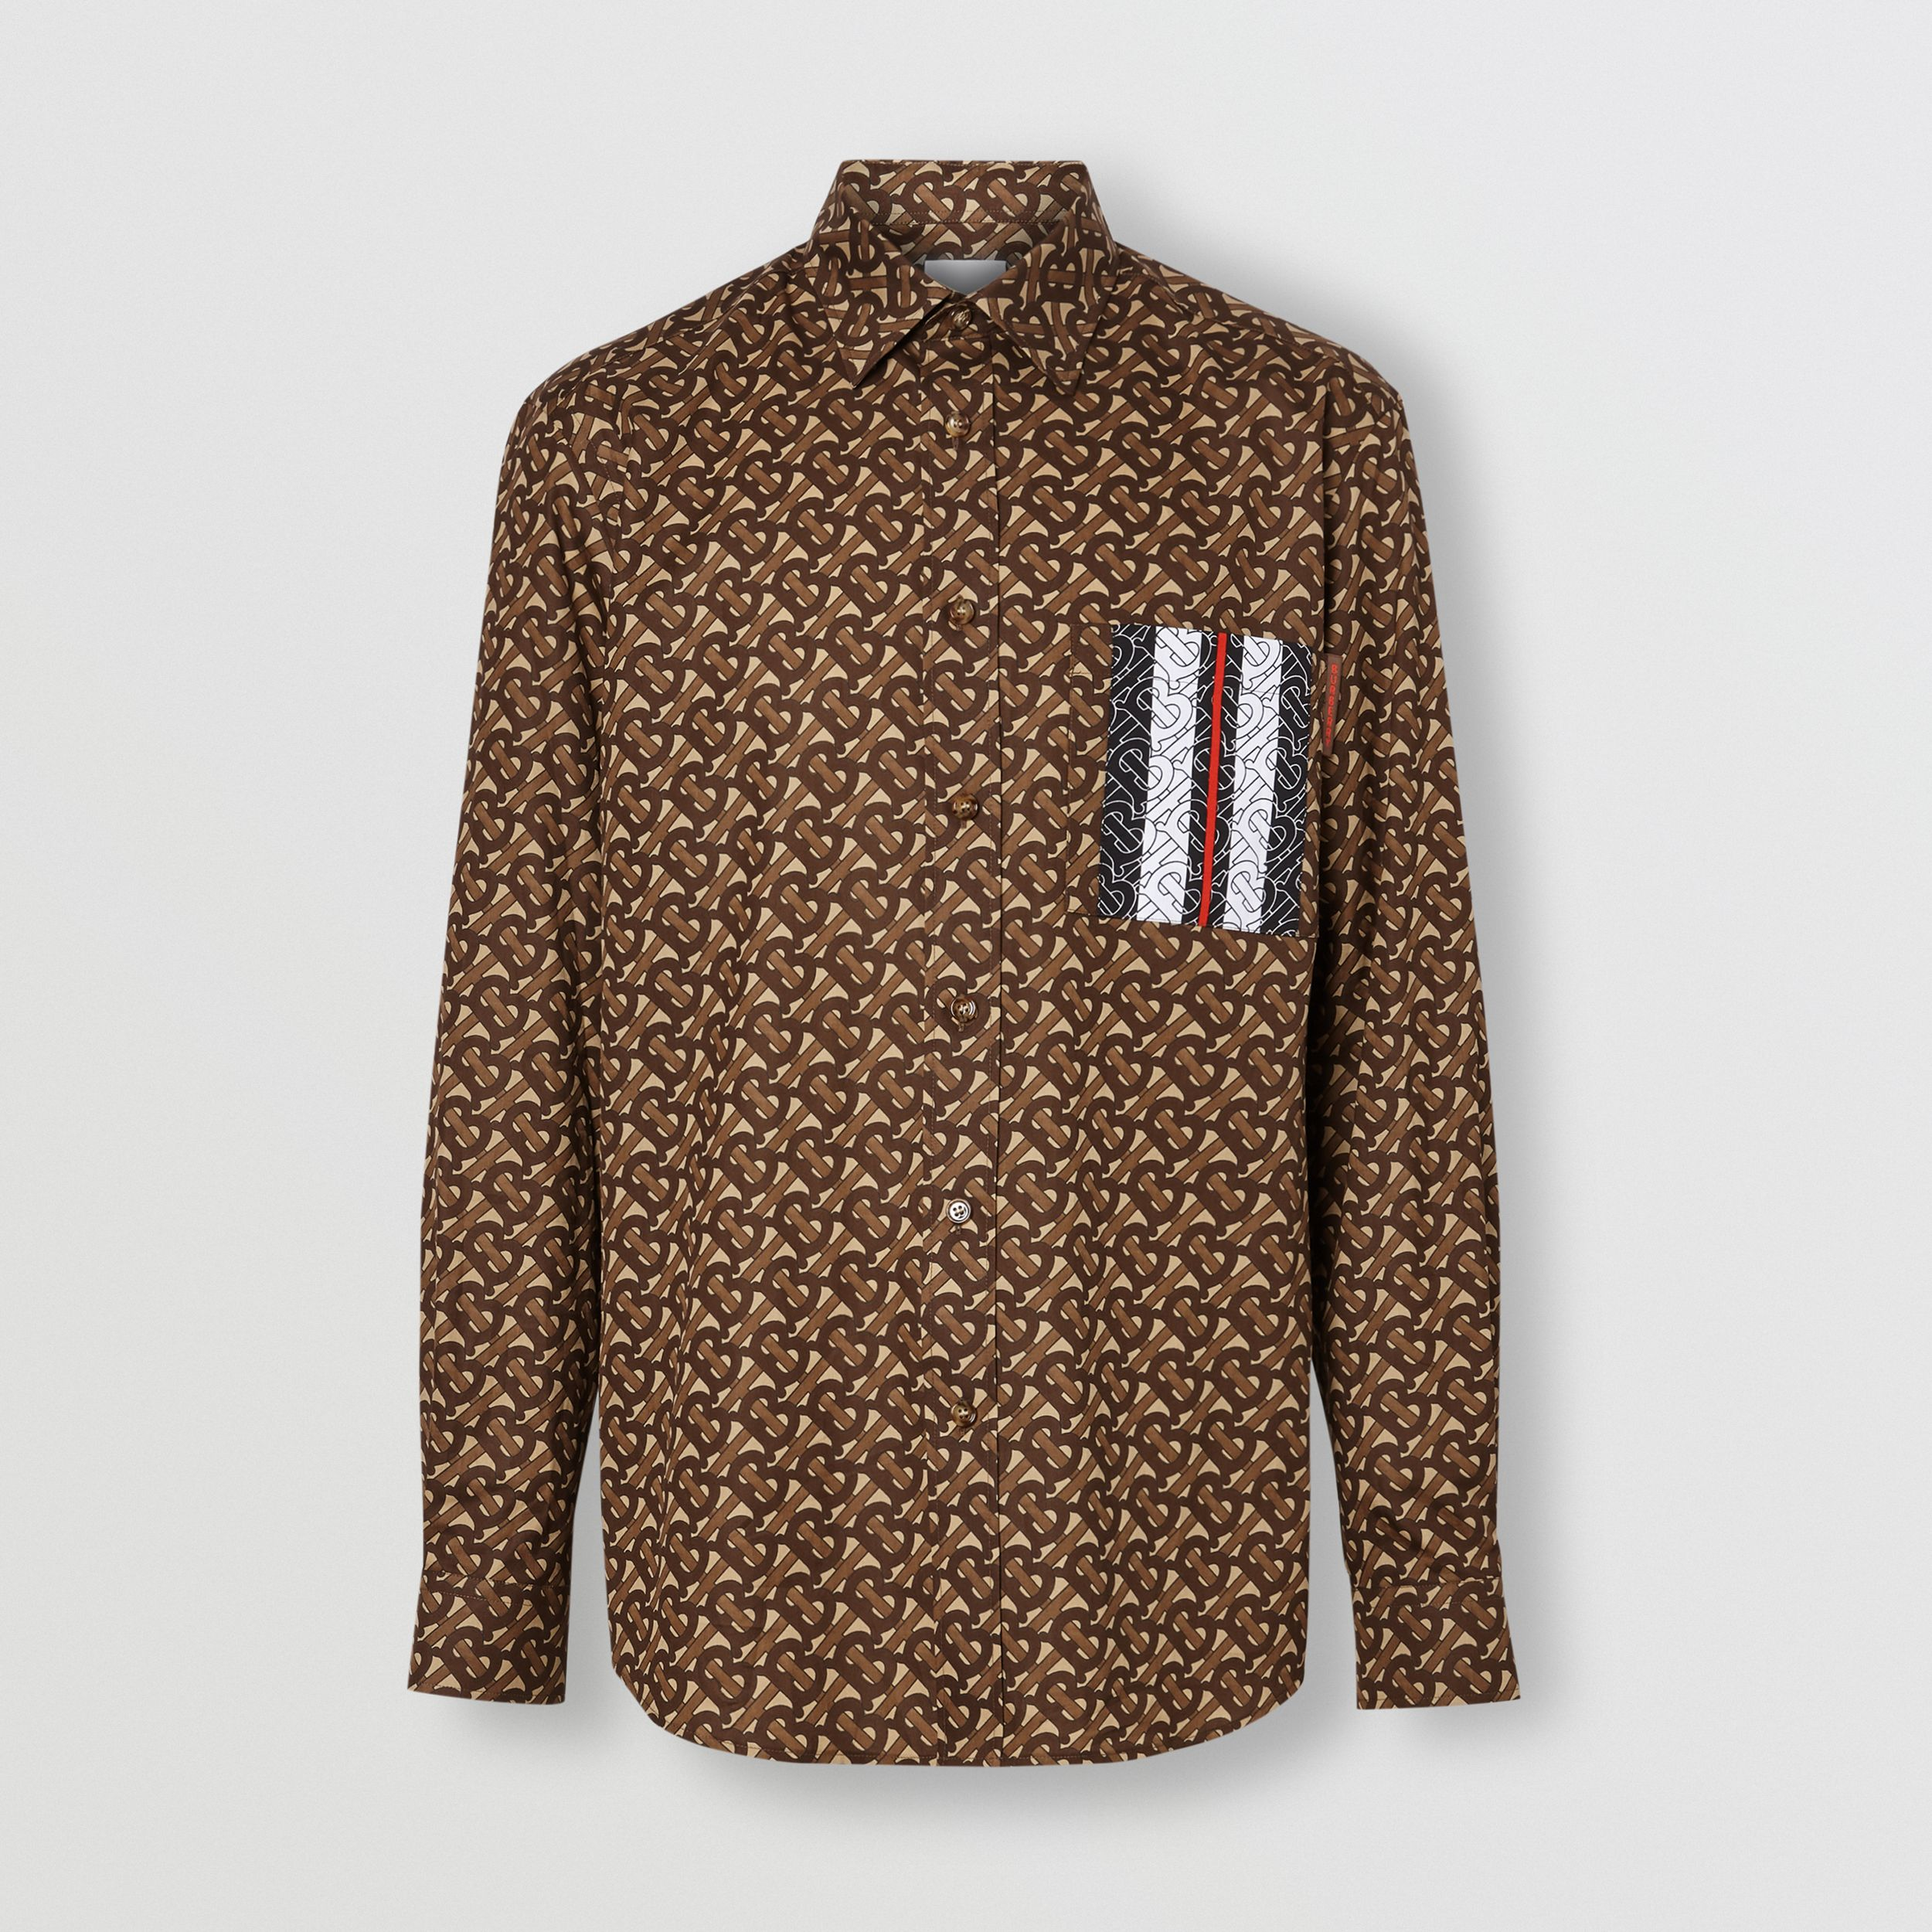 Monogram Stripe Print Cotton Shirt in Bridle Brown - Men | Burberry - 4